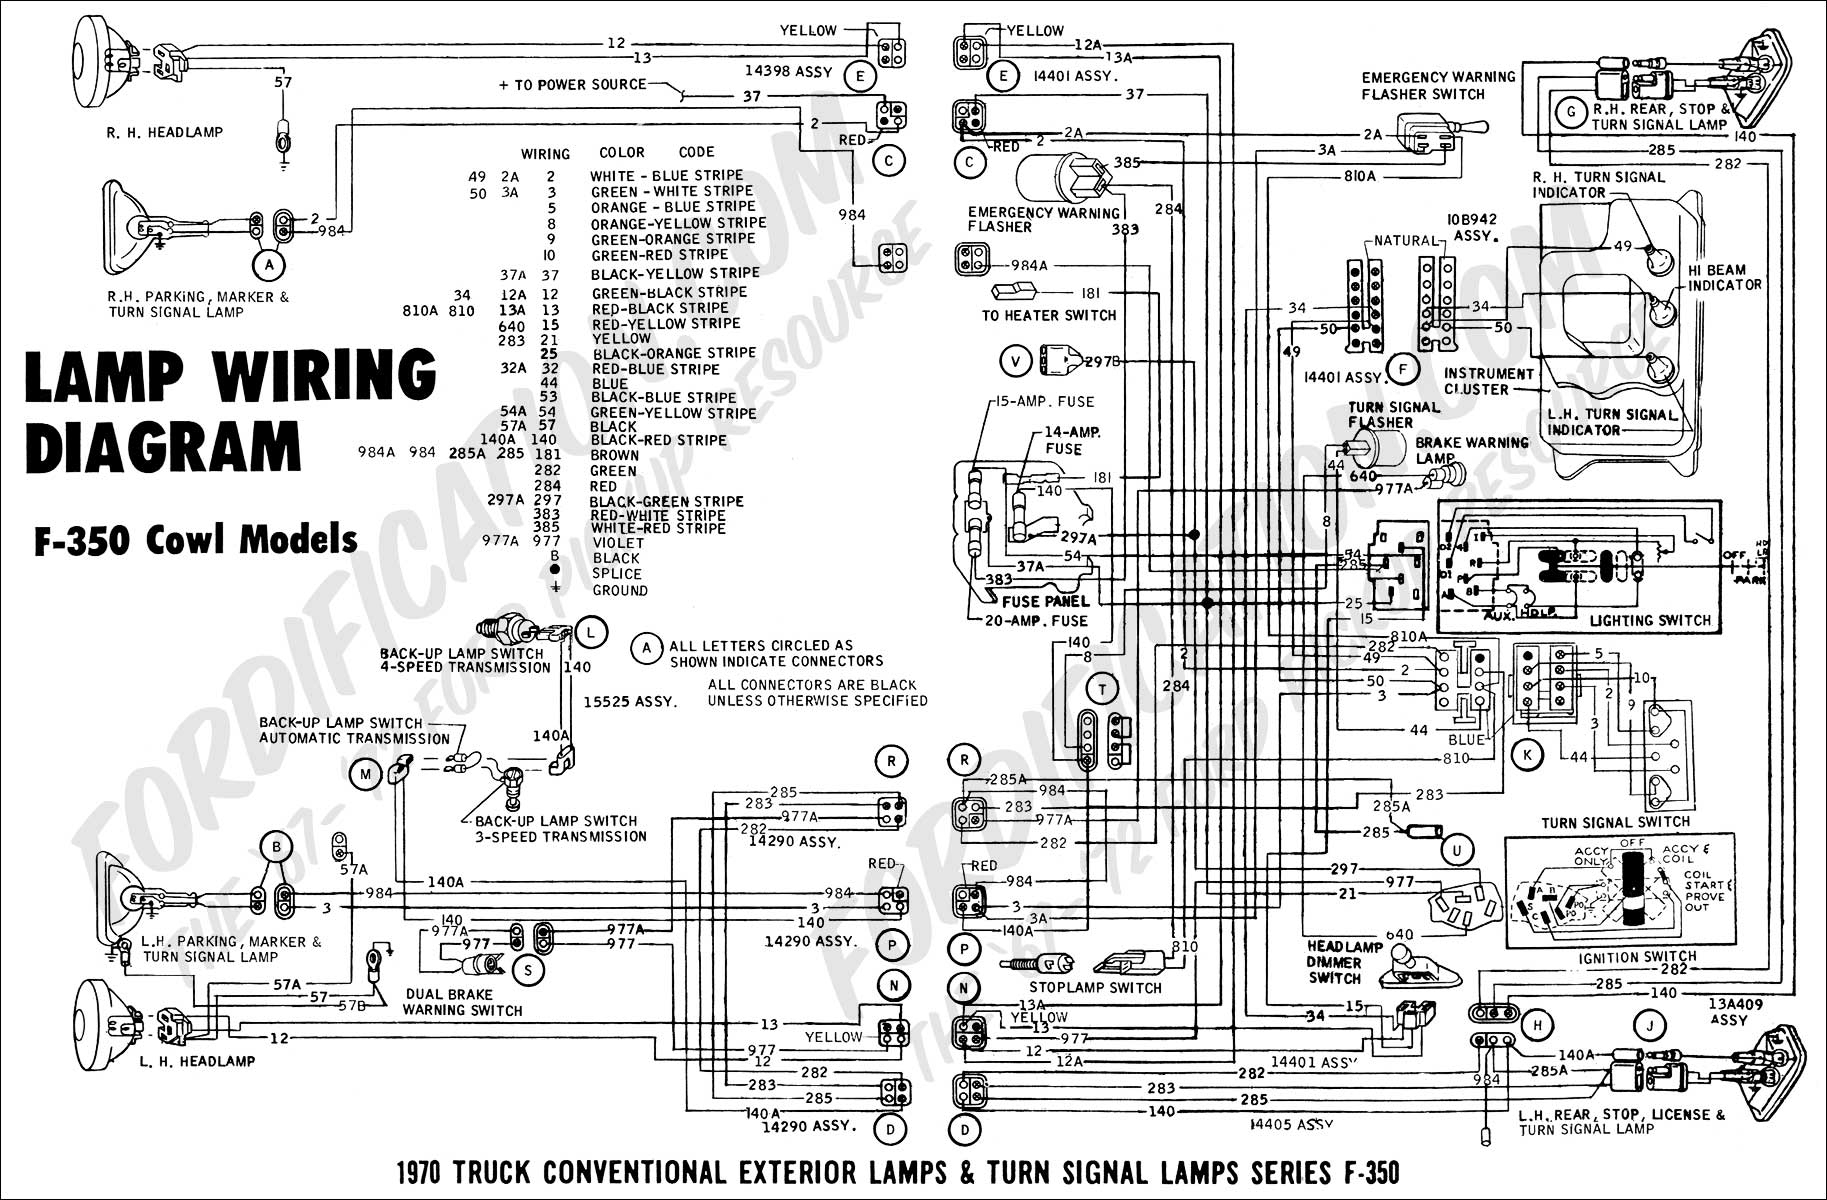 2000 Ford Super Duty Wiring Diagram - Wiring Diagram Data Oreo - 2013 Ford F250 Trailer Plug Wiring Diagram